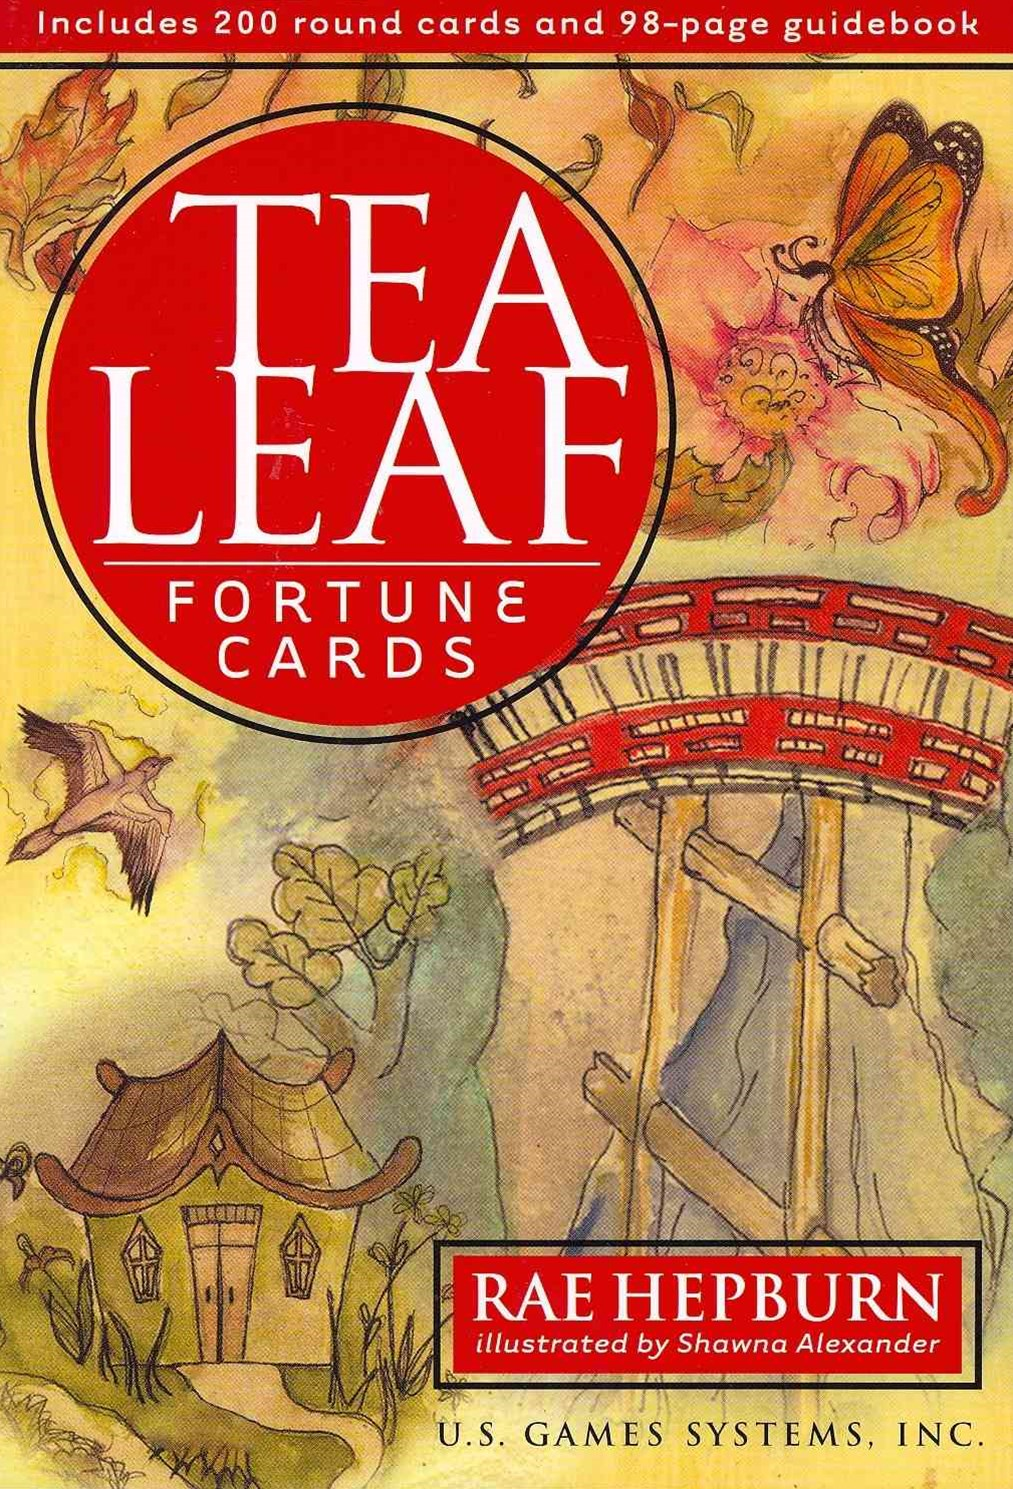 Ic: Tea Leaf Fortune Cards